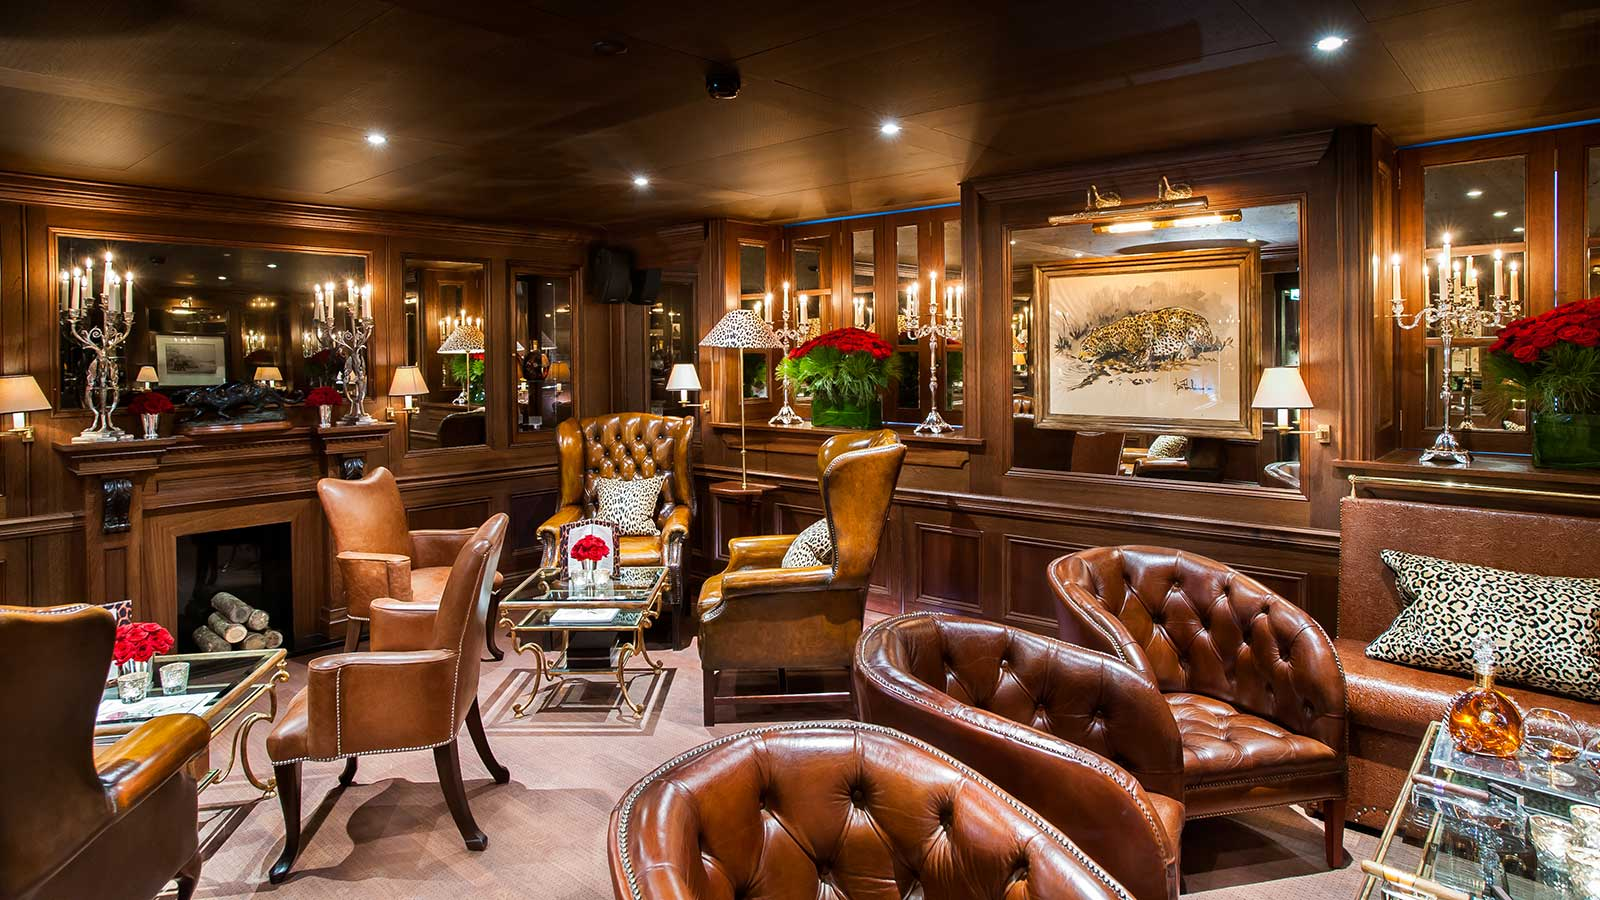 The Cigar Lounge at the Leopard Bar has proven so popular, both for hotel guests, tourists and the regular local after-work crowd, that they had to ban cigarettes to keep enough seats for cigar lovers.